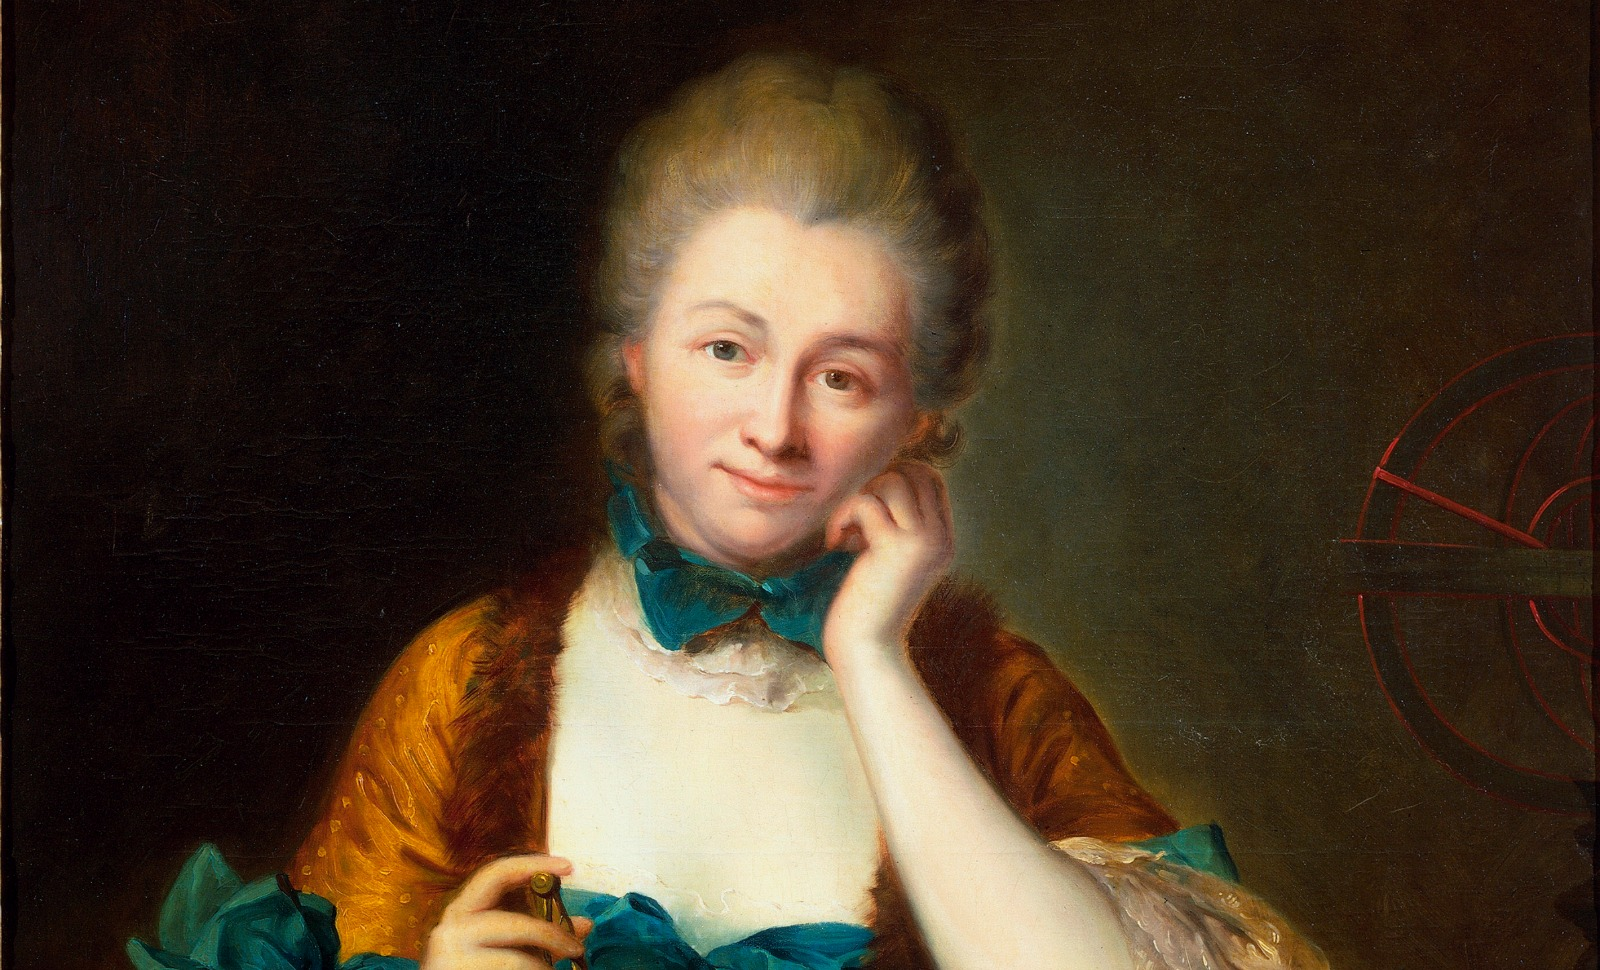 emilie du chatelet essay Category: essays research papers fc title: emilie du chatelet role of women in the scientific revolution essay - when most people think of the scientific revolution, they think of scientists such as galileo, newton, brahe, and boyle.